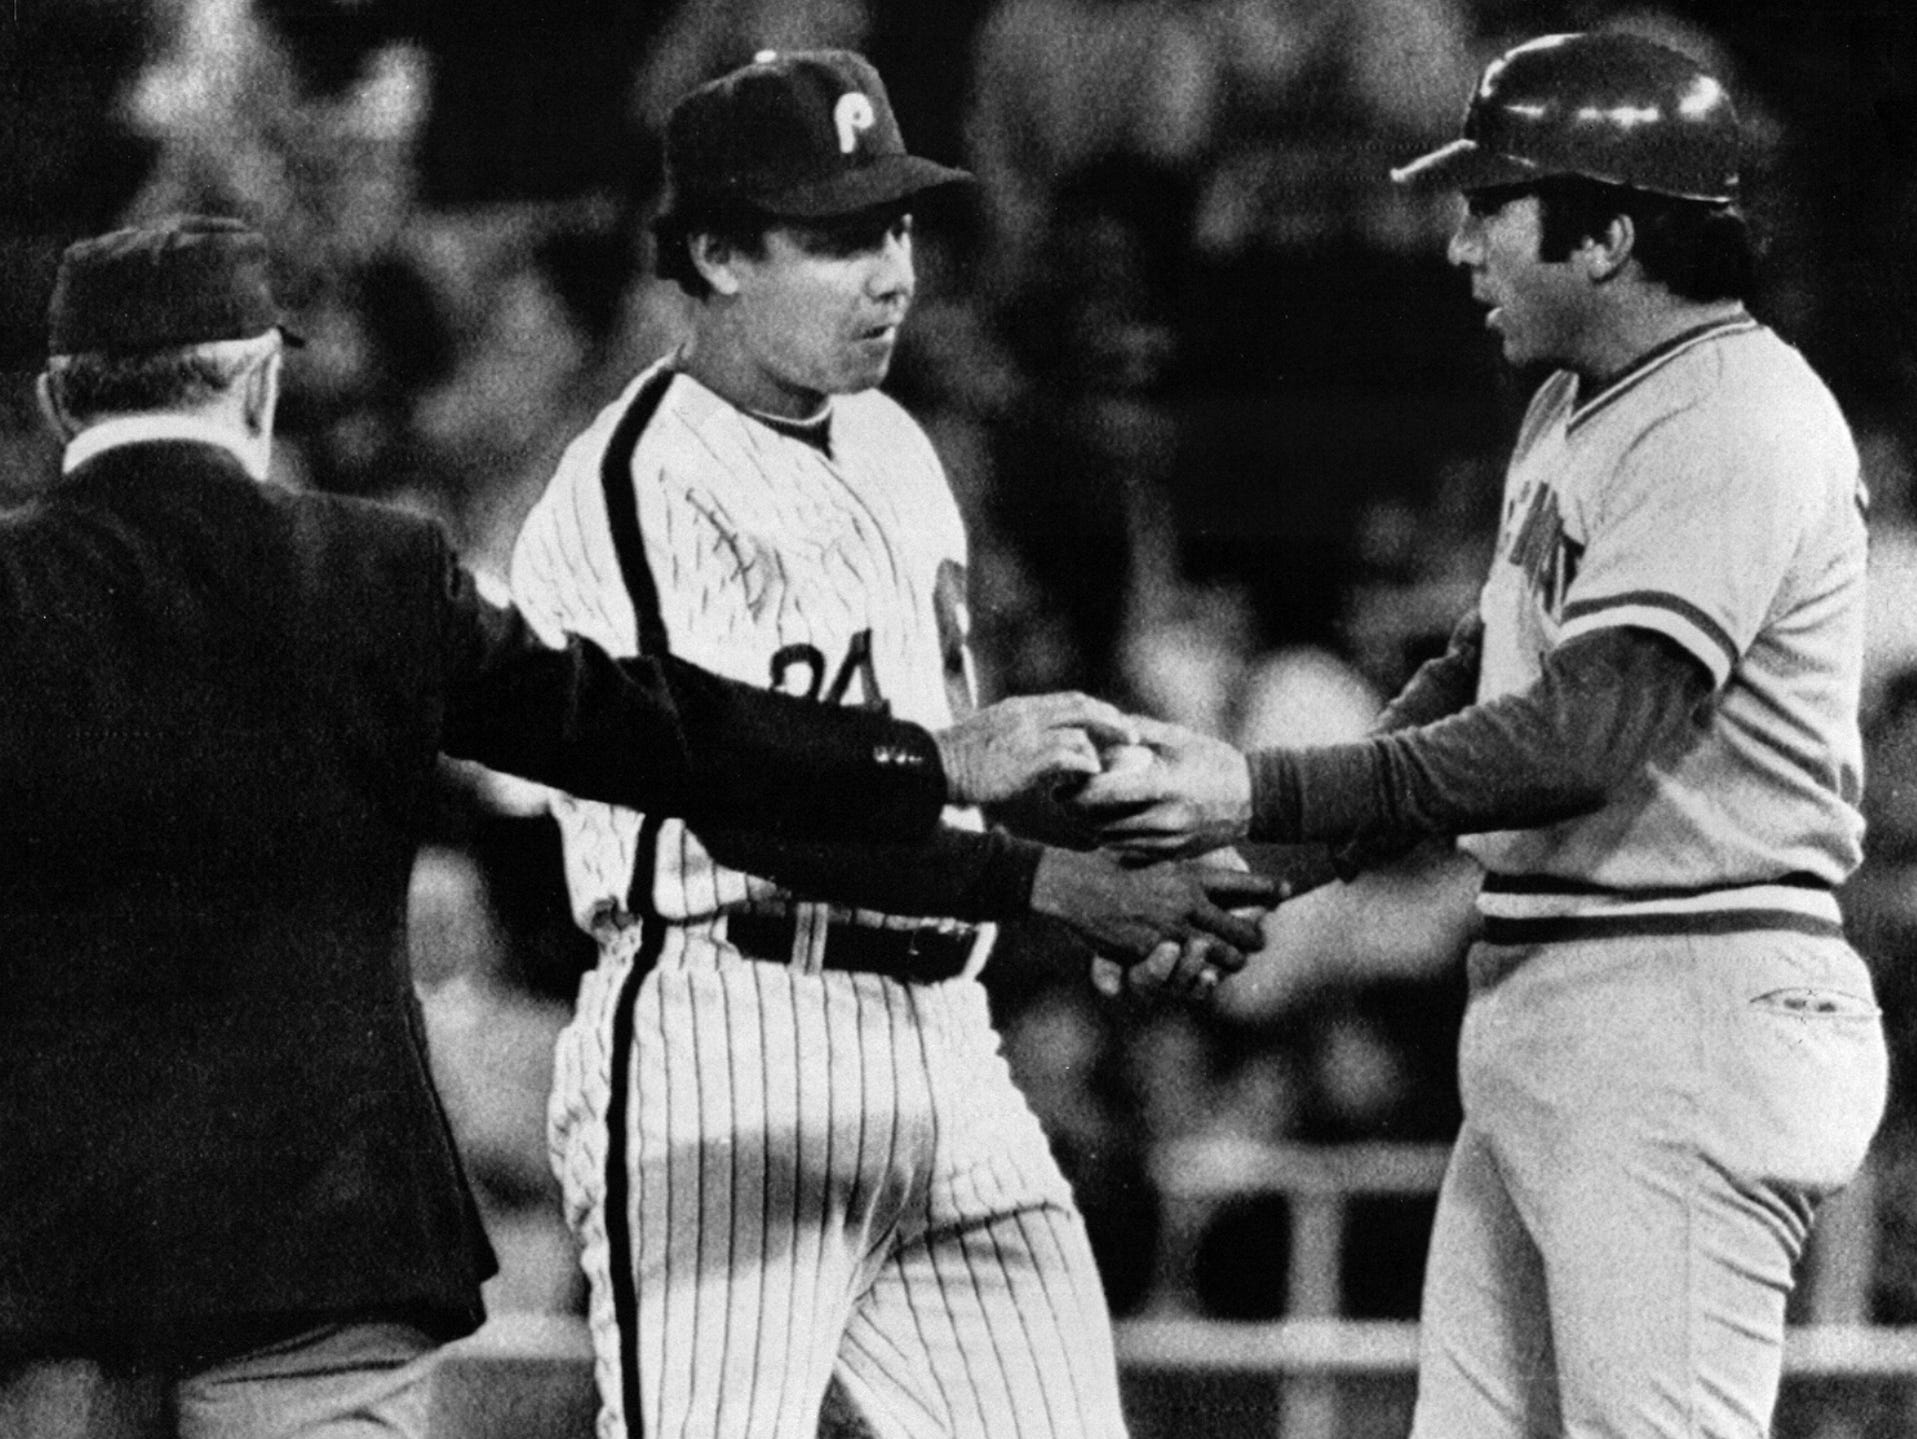 MAY 5, 1983: Cincinnati Reds Johnny Bench gets a hand shake form former teammate Phillies first baseman Tony Perez as the umpire hands him the ball following his 2,000 career it Wednesday night in Philadelphia. Bench's single came off Phillies Steve Carlton but the Phillies won, 9-4. AP Photo/Peter Morgan scanned August 7, 2013